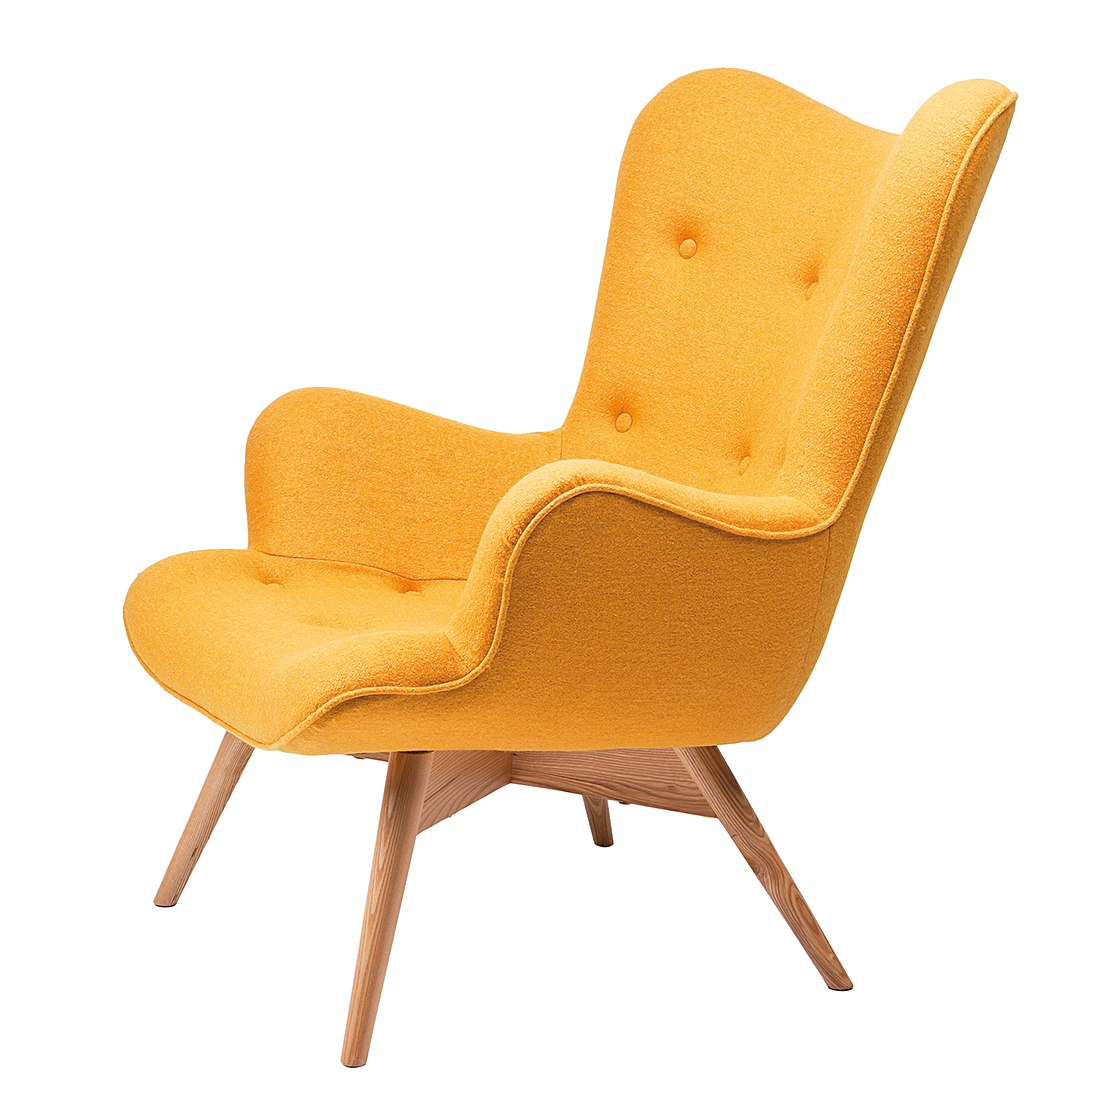 Fauteuil angels wings new geel uit de collectie van kare for Kuipstoel fauteuil